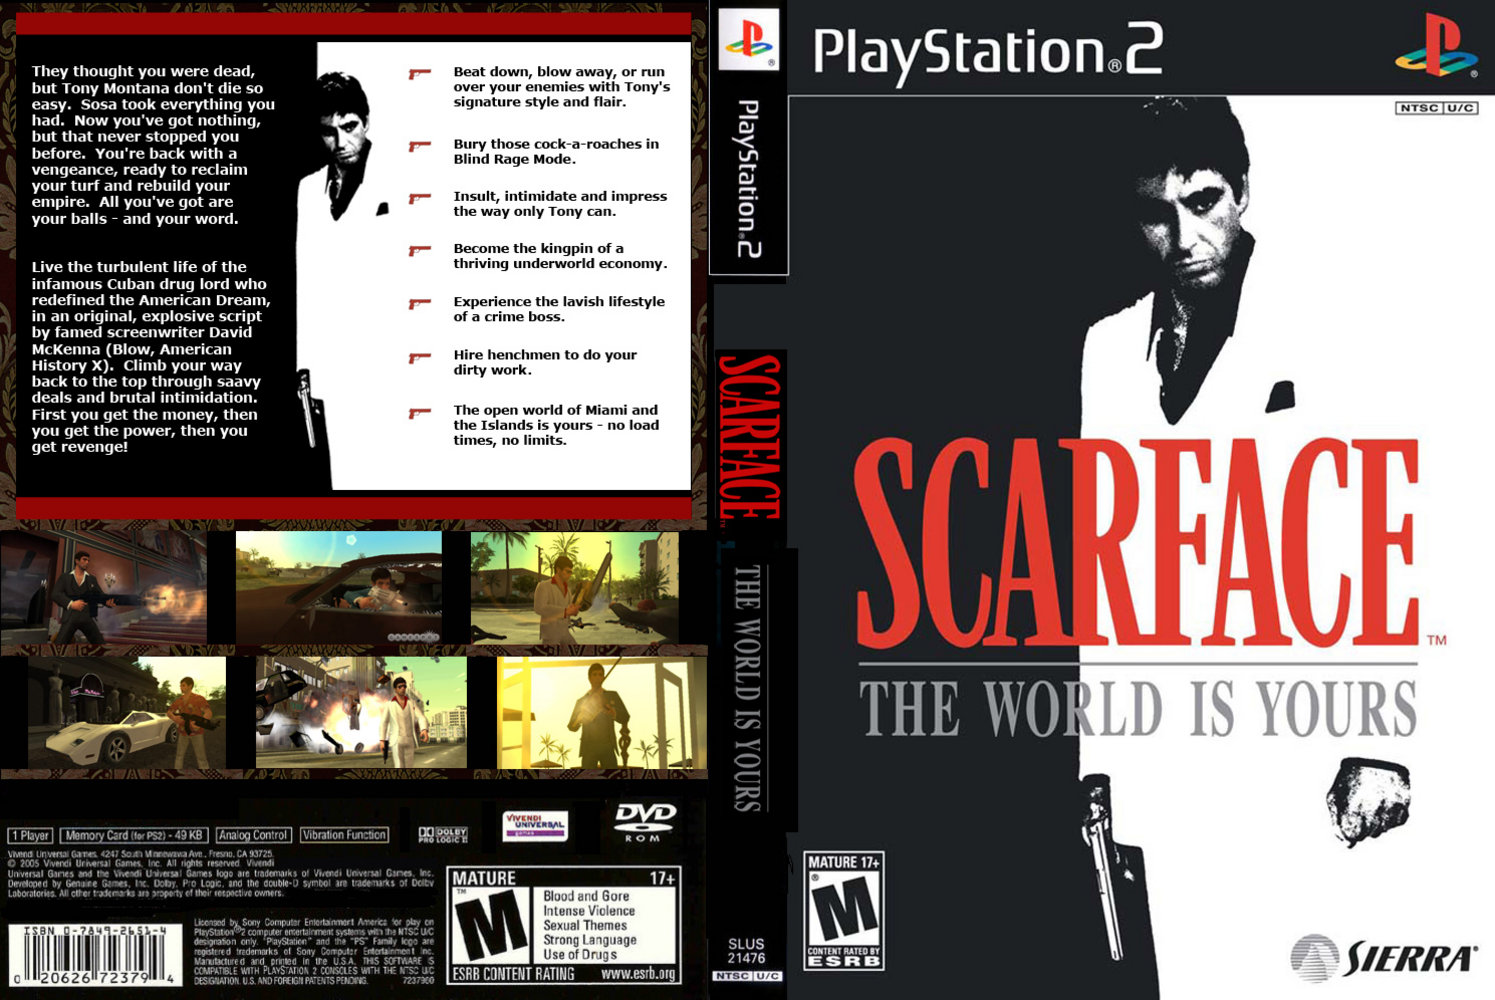 Jc Video Ps2 Scarface The World Is Yours